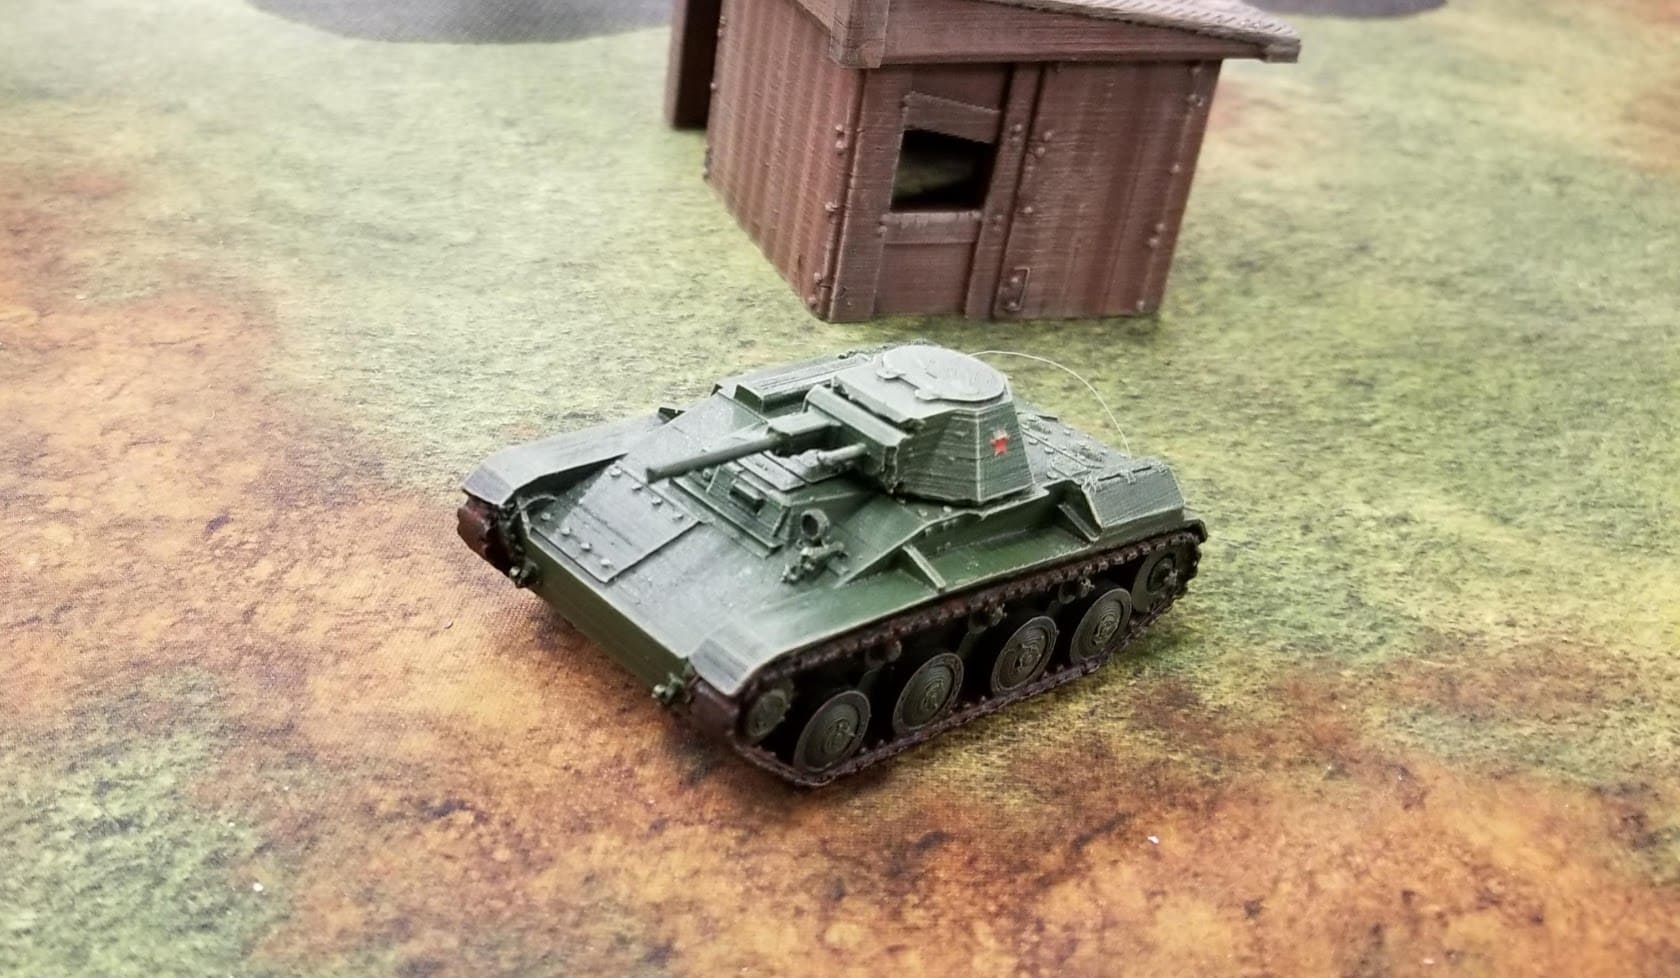 The T-60 and T-60 BM8-24: Uncle Joe's Little Tank That Could